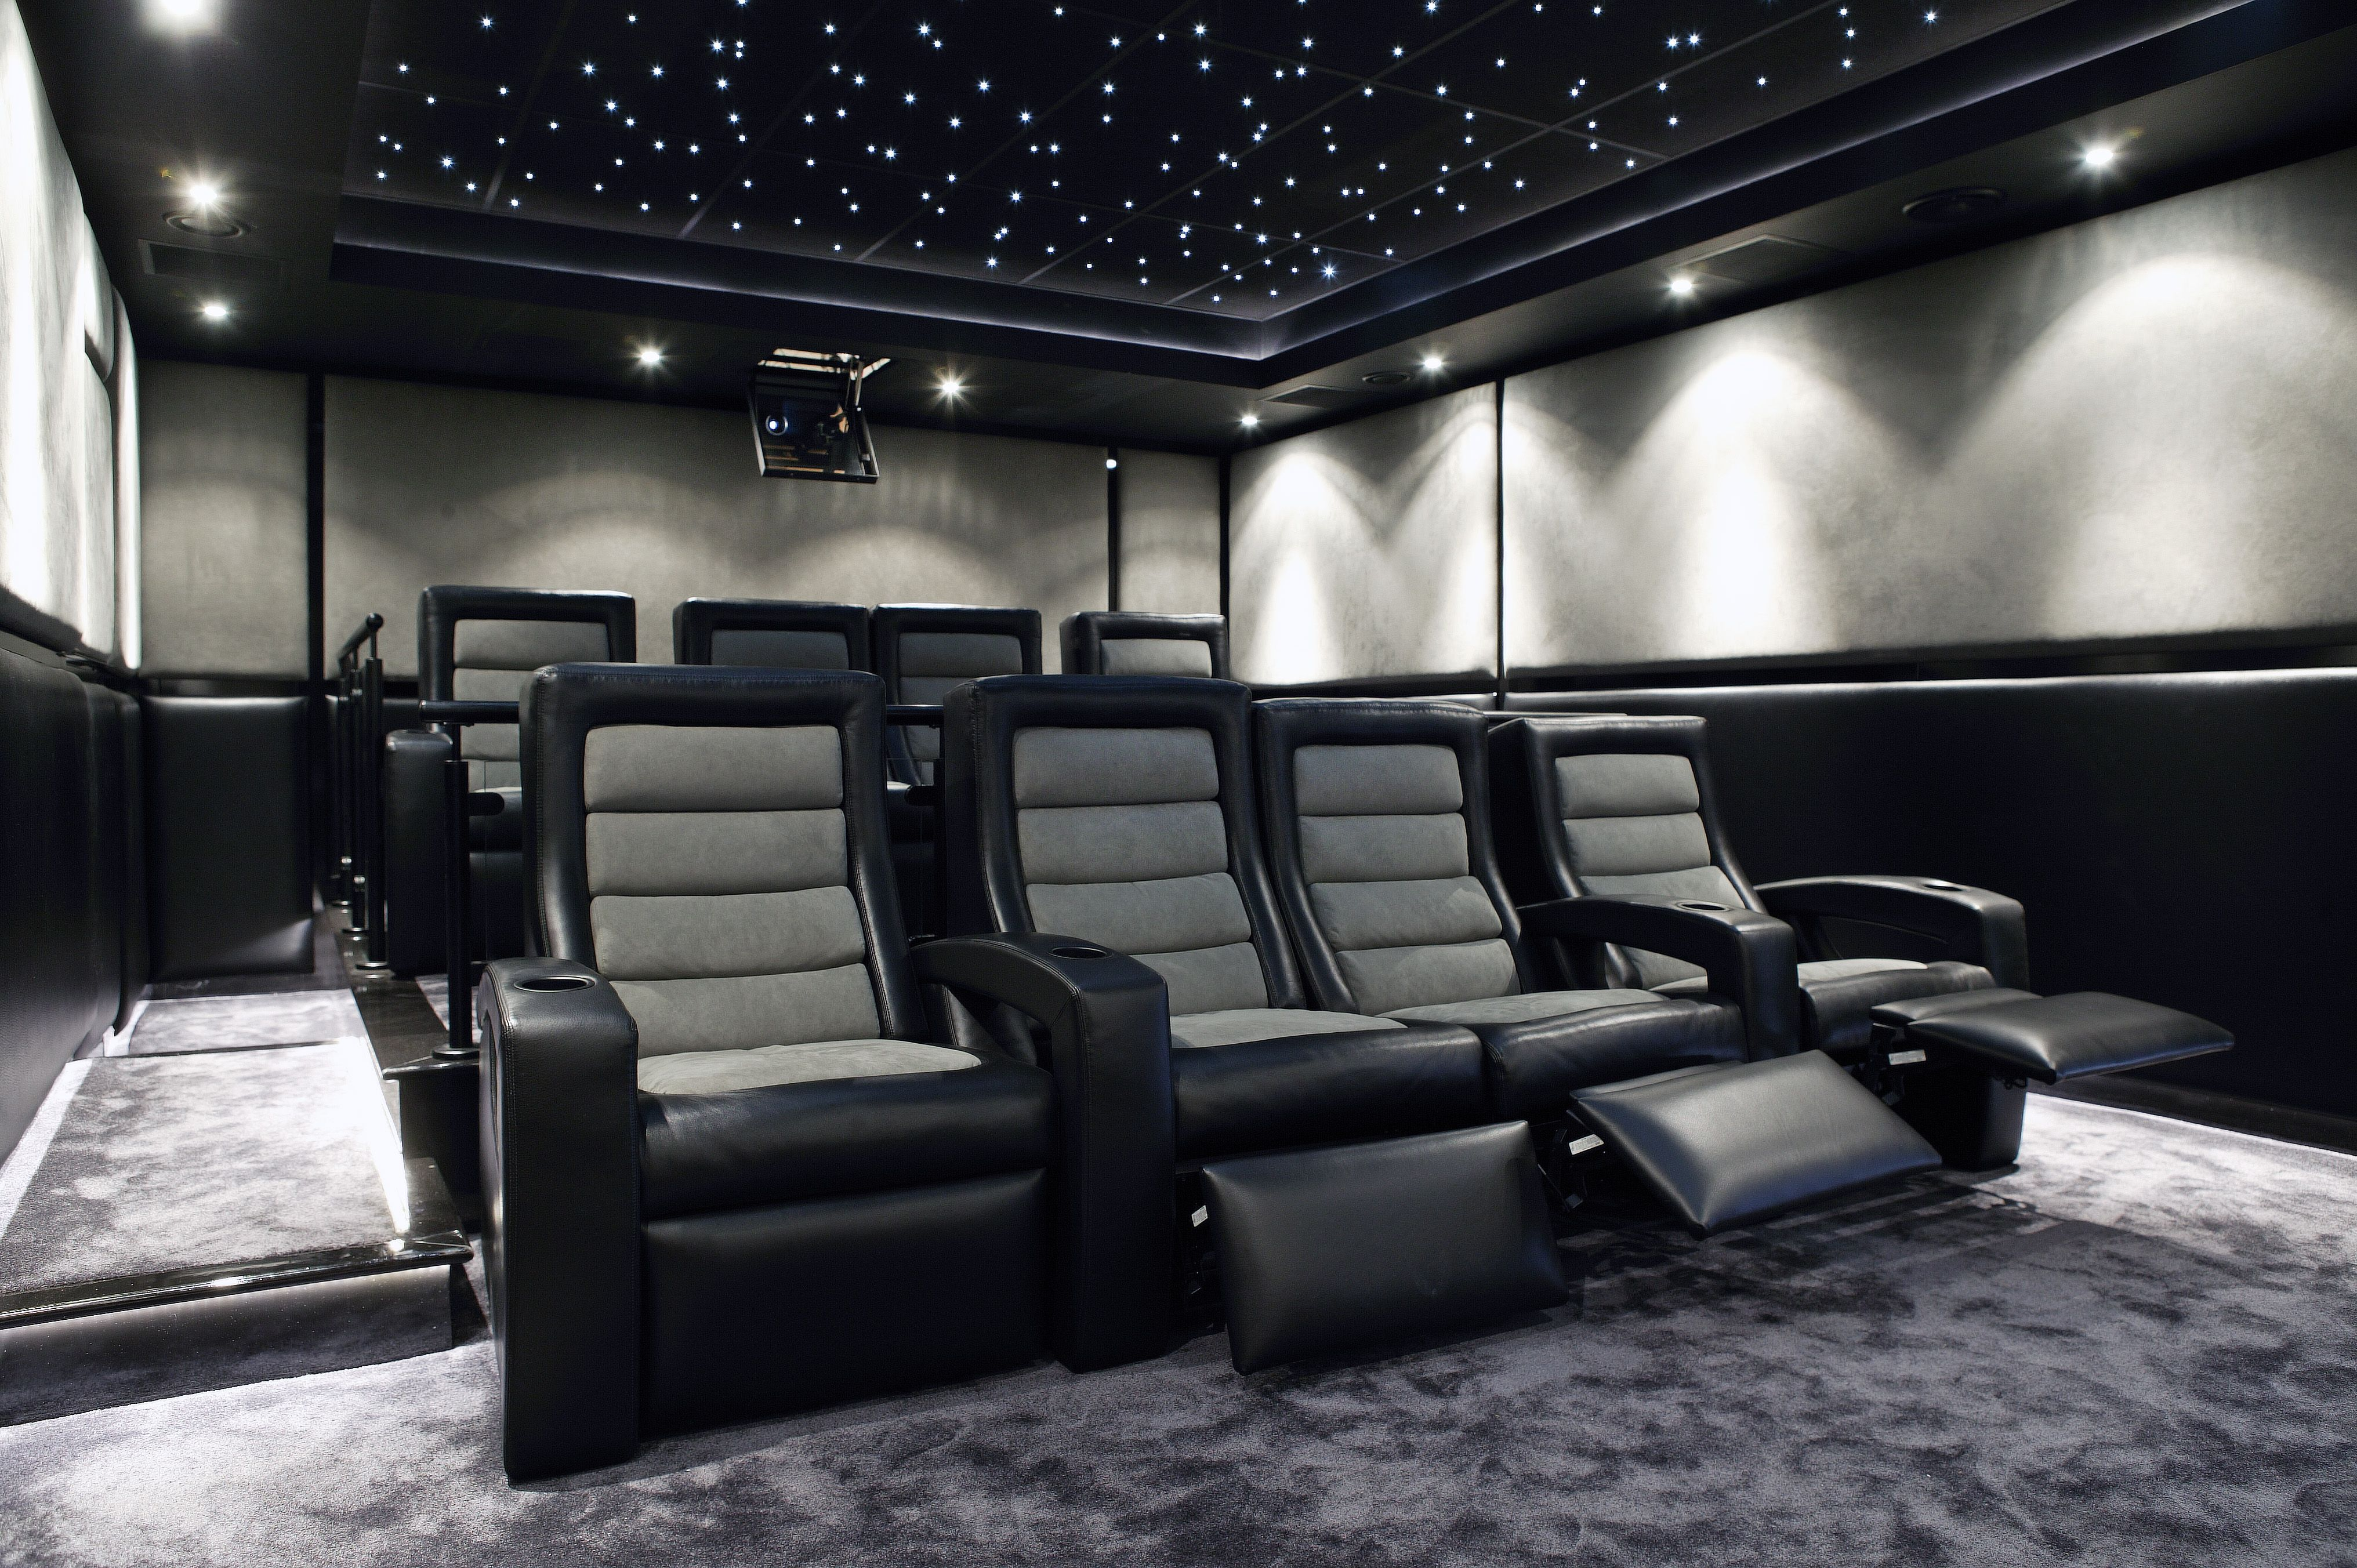 cinepolis luxury cinemas - watch movies like a rock star